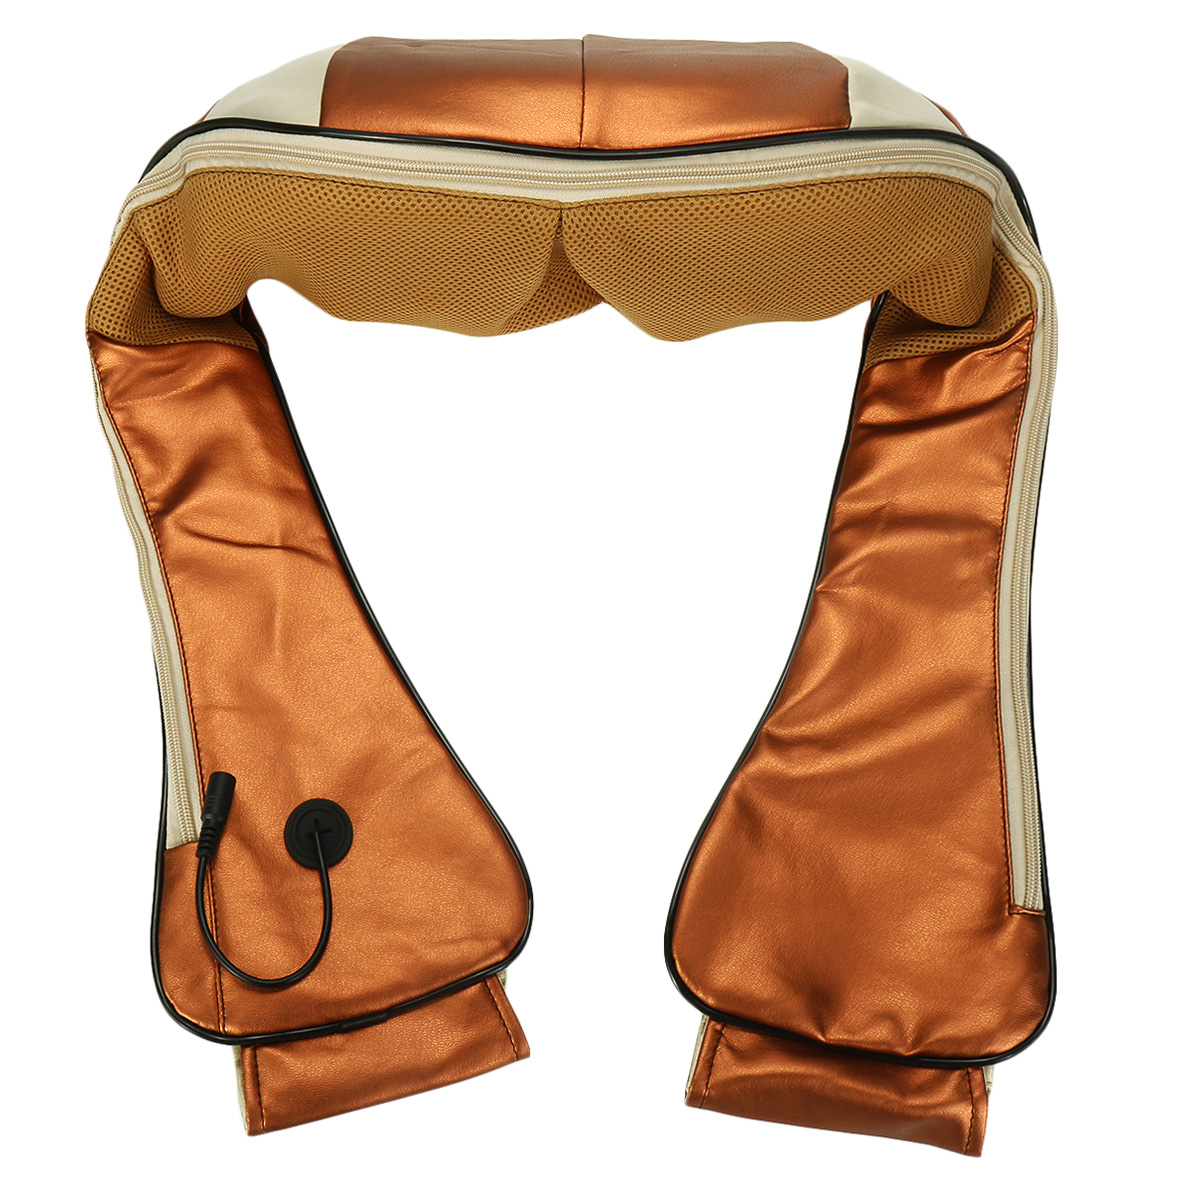 6 Keys Shiatsu Kneading Electric Massager Neck Shoulder Back Body Heating Therapy Pain Relief Belt